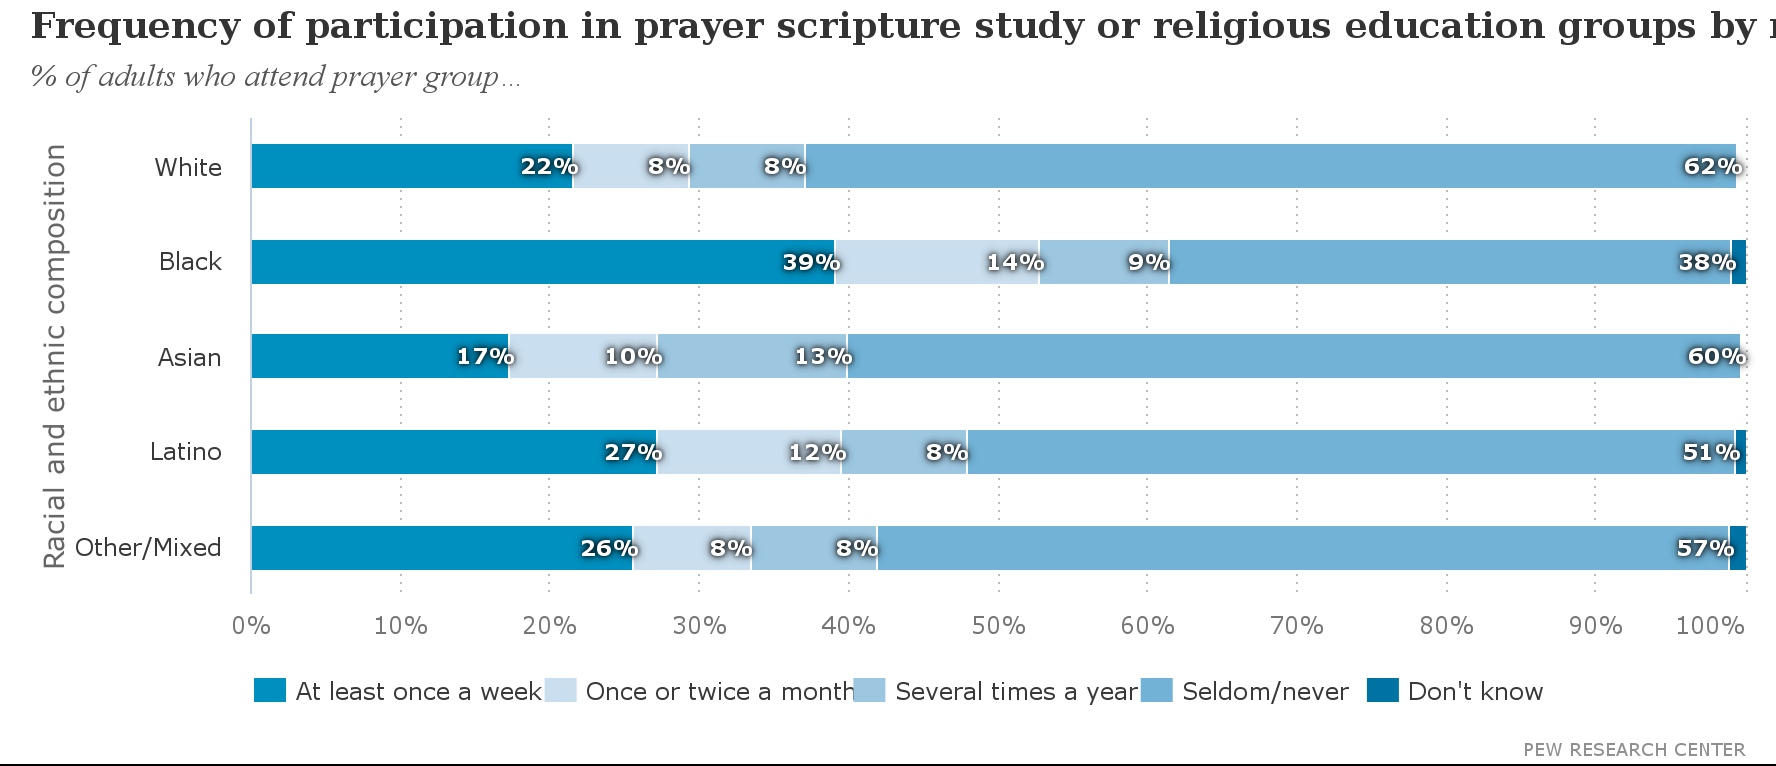 Frequency_of_participation_in_prayer_scripture_study_or_religious_education_groups_by_race-ethnicity_Fotor